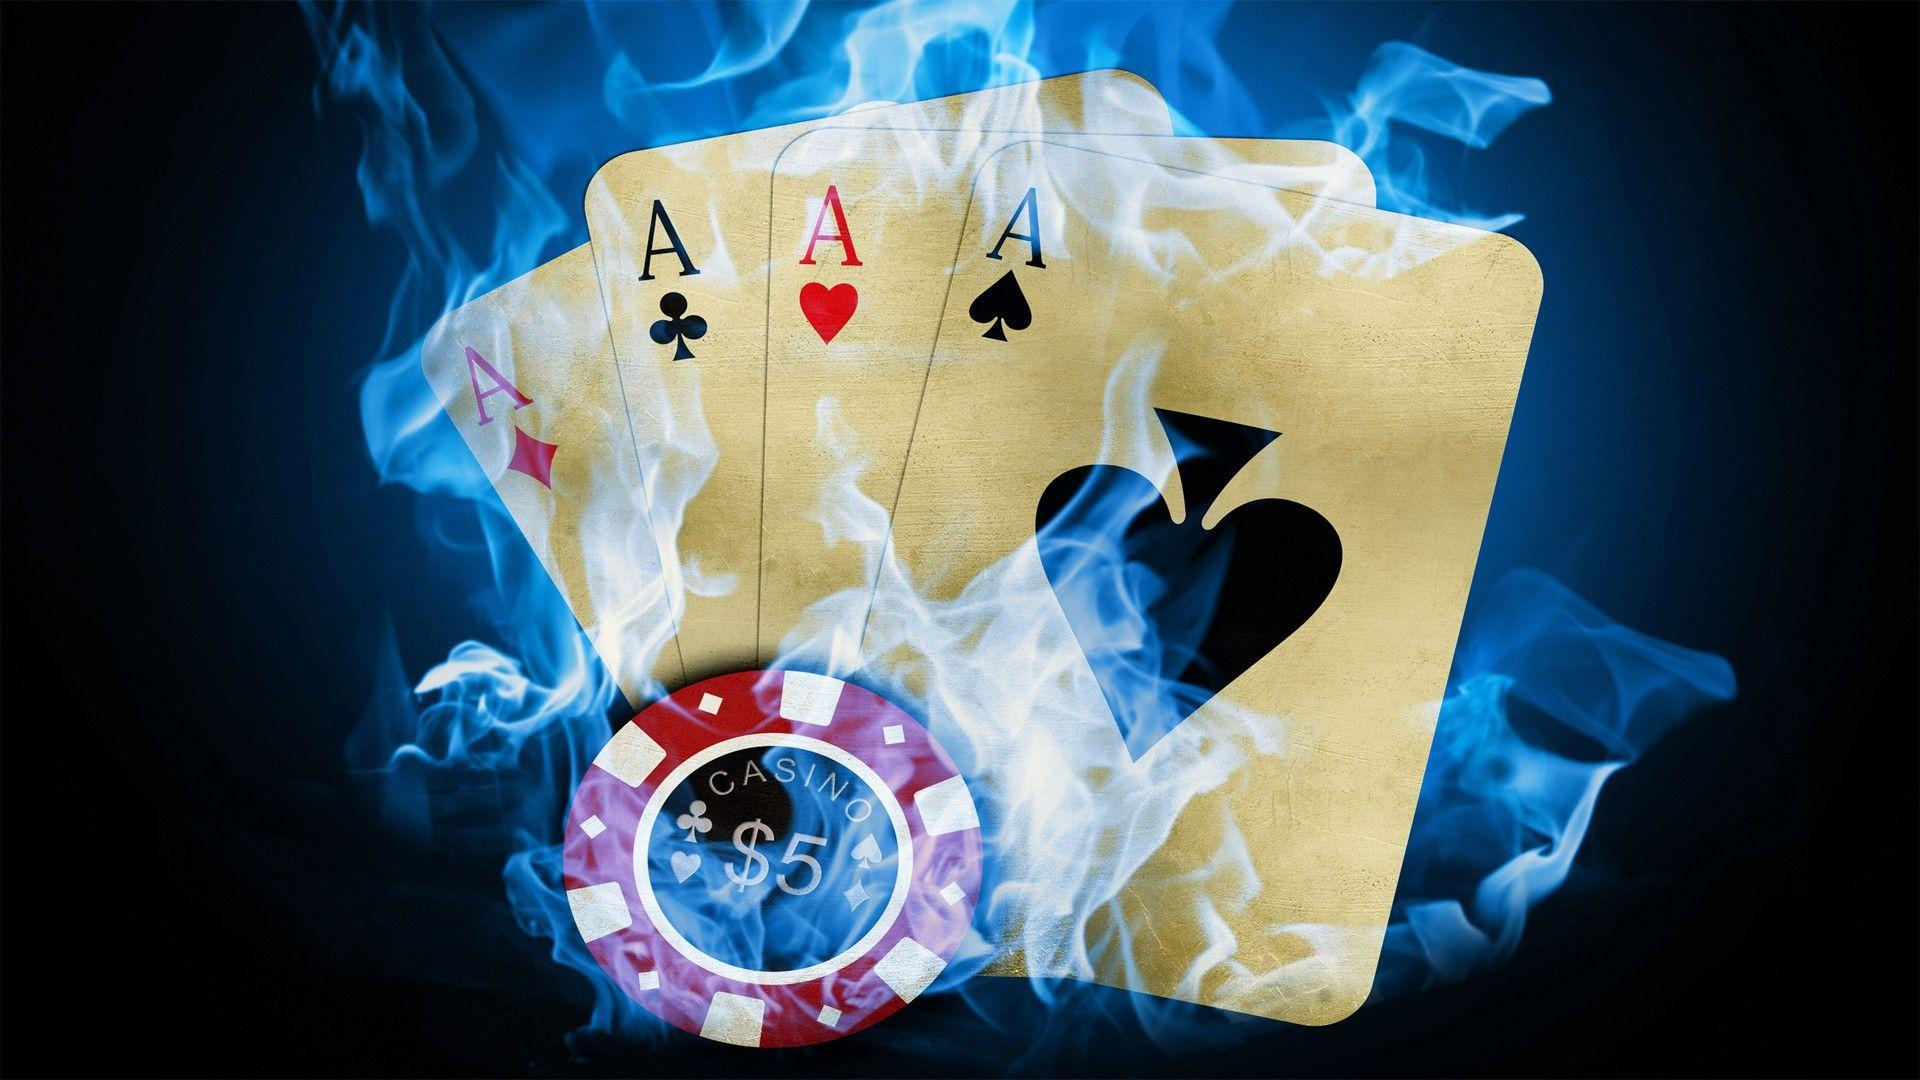 Revenues A Number Earnings From Online Gambling